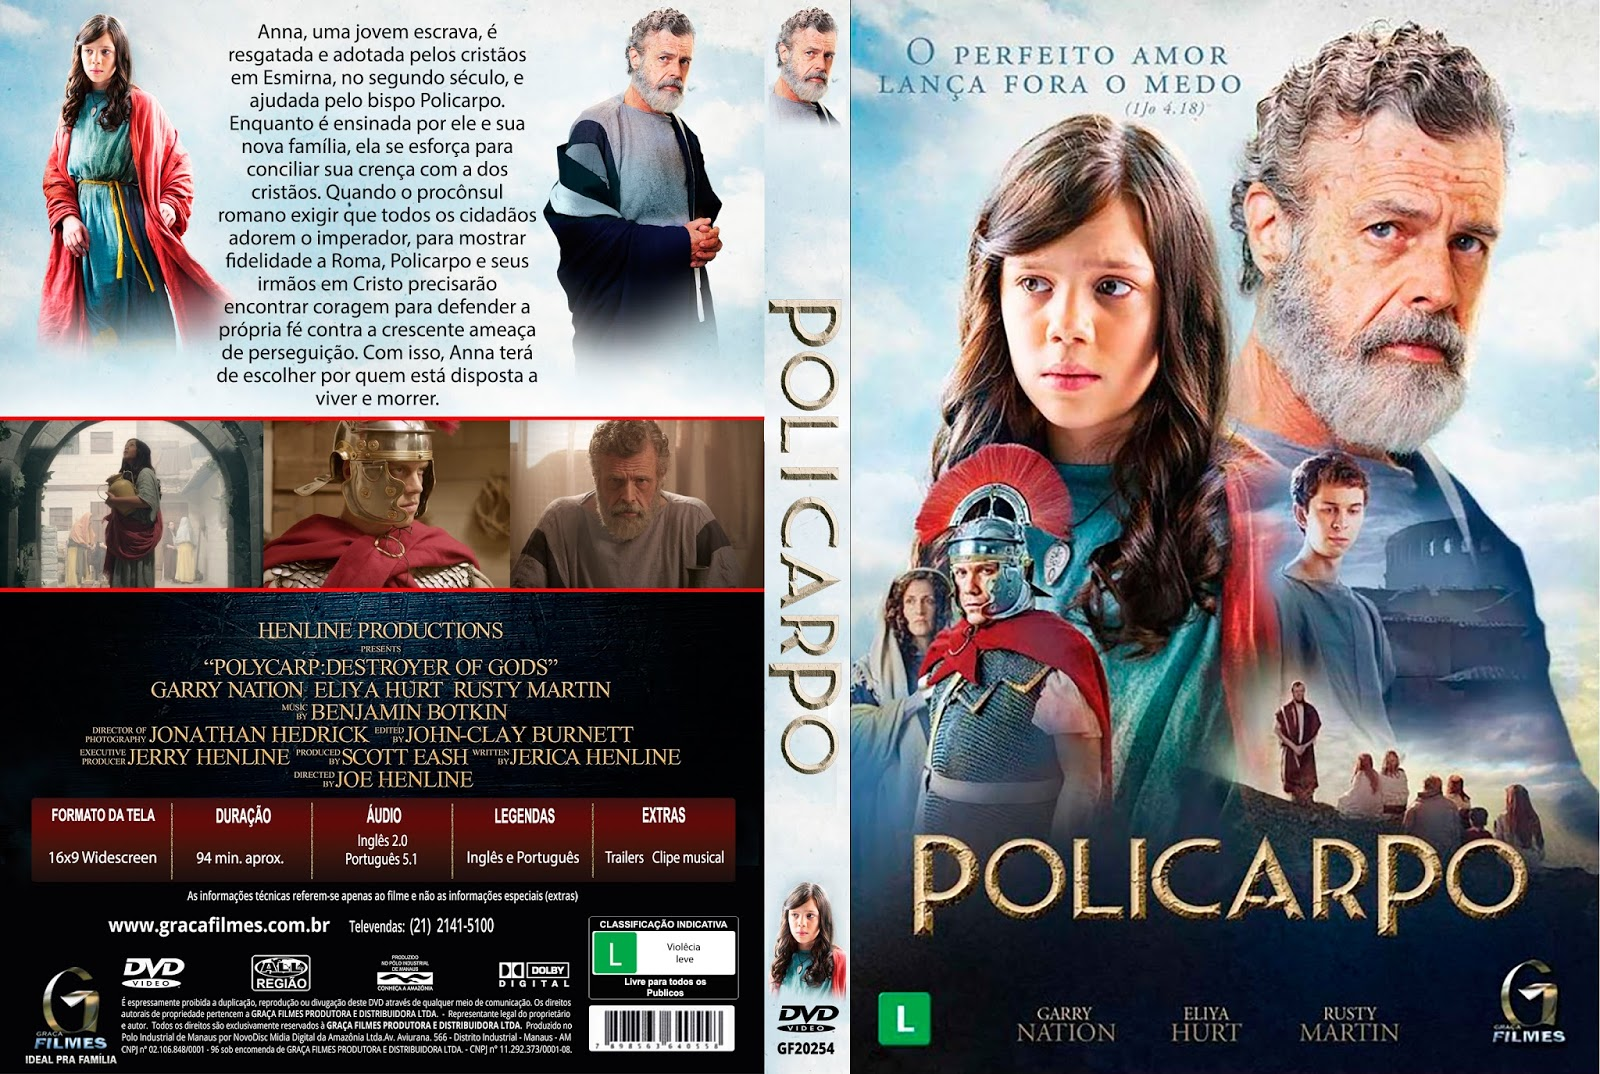 Download Policarpo DVD-R Policarpo 2BDVD R 2BXANDAODOWNLOAD